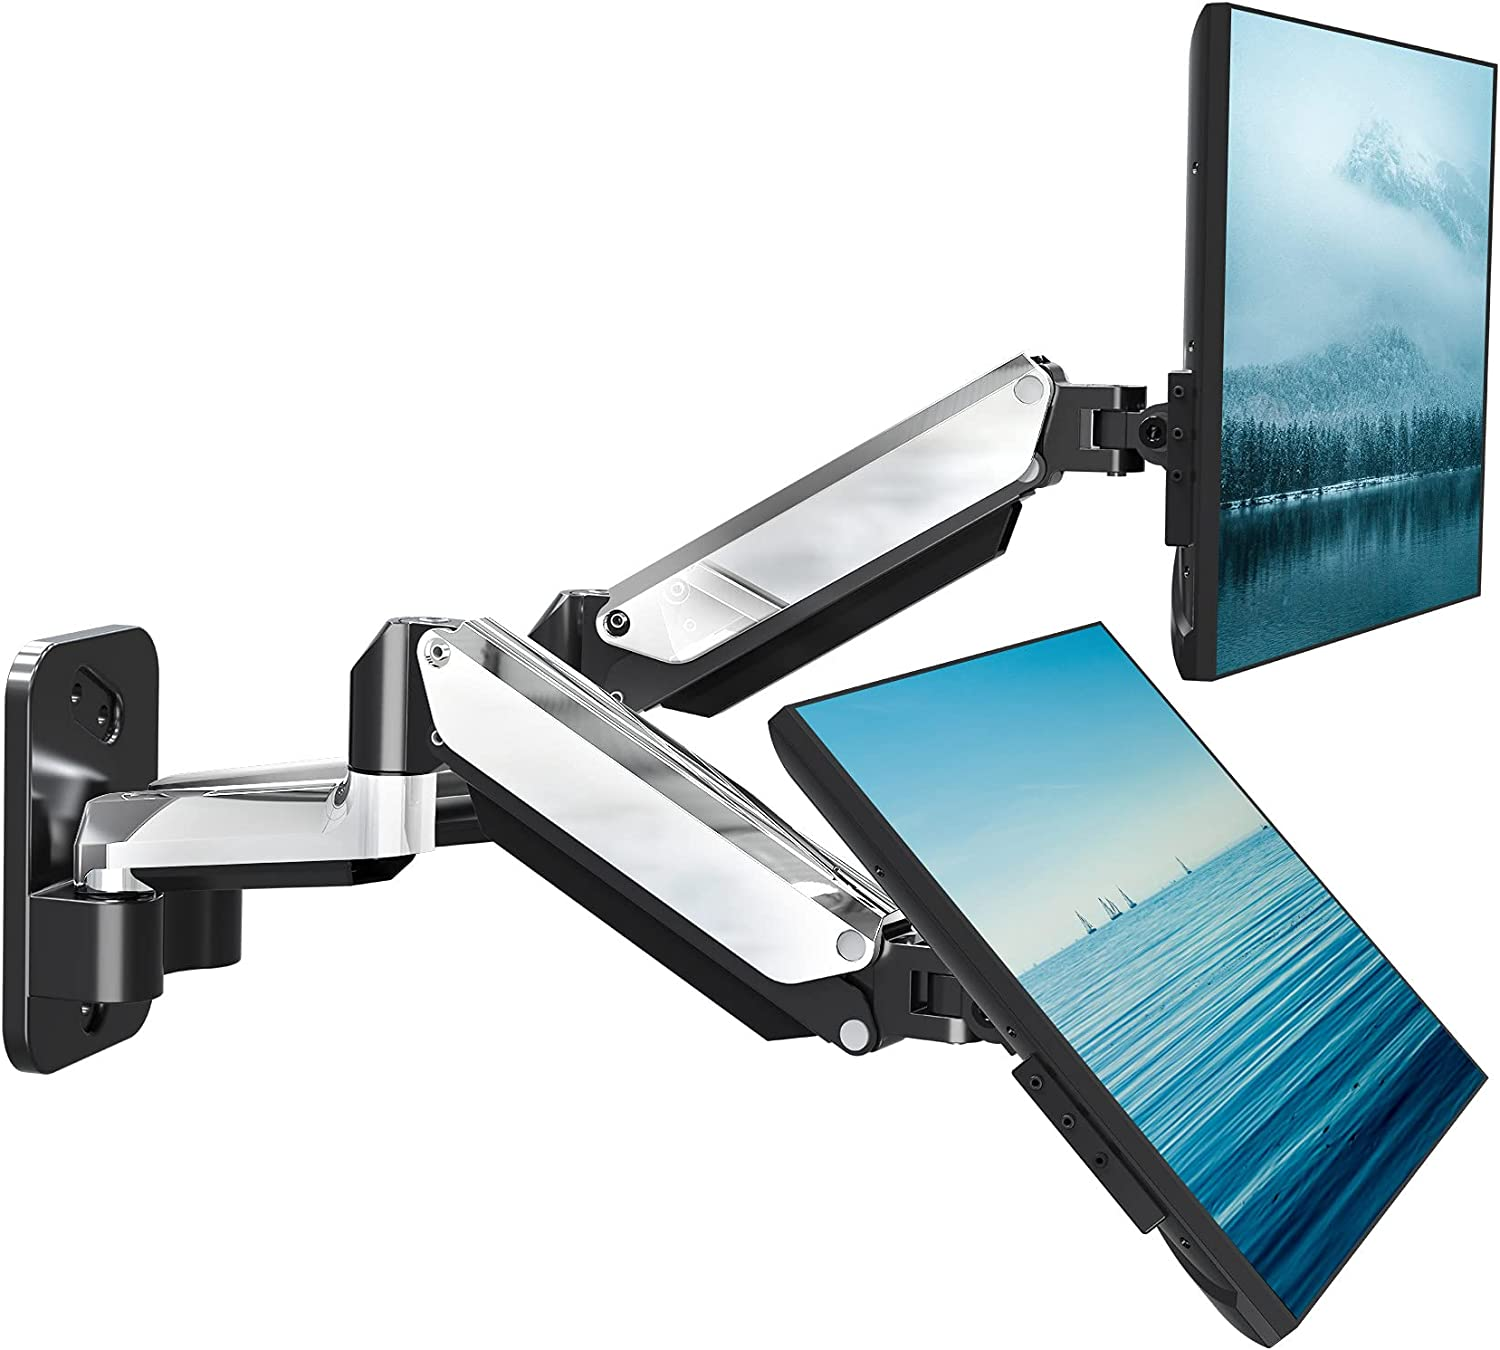 MOUNTUP Dual Monitor Wall Mount, Fully Adjustable Polished Aluminium Gas Spring Monitor Arm for 2 Max 32 Inch Flat Curved Computer Screen, Swivel Monitor Stand Hold 3.3-17.6lbs, Fit VESA 75x75&100x100